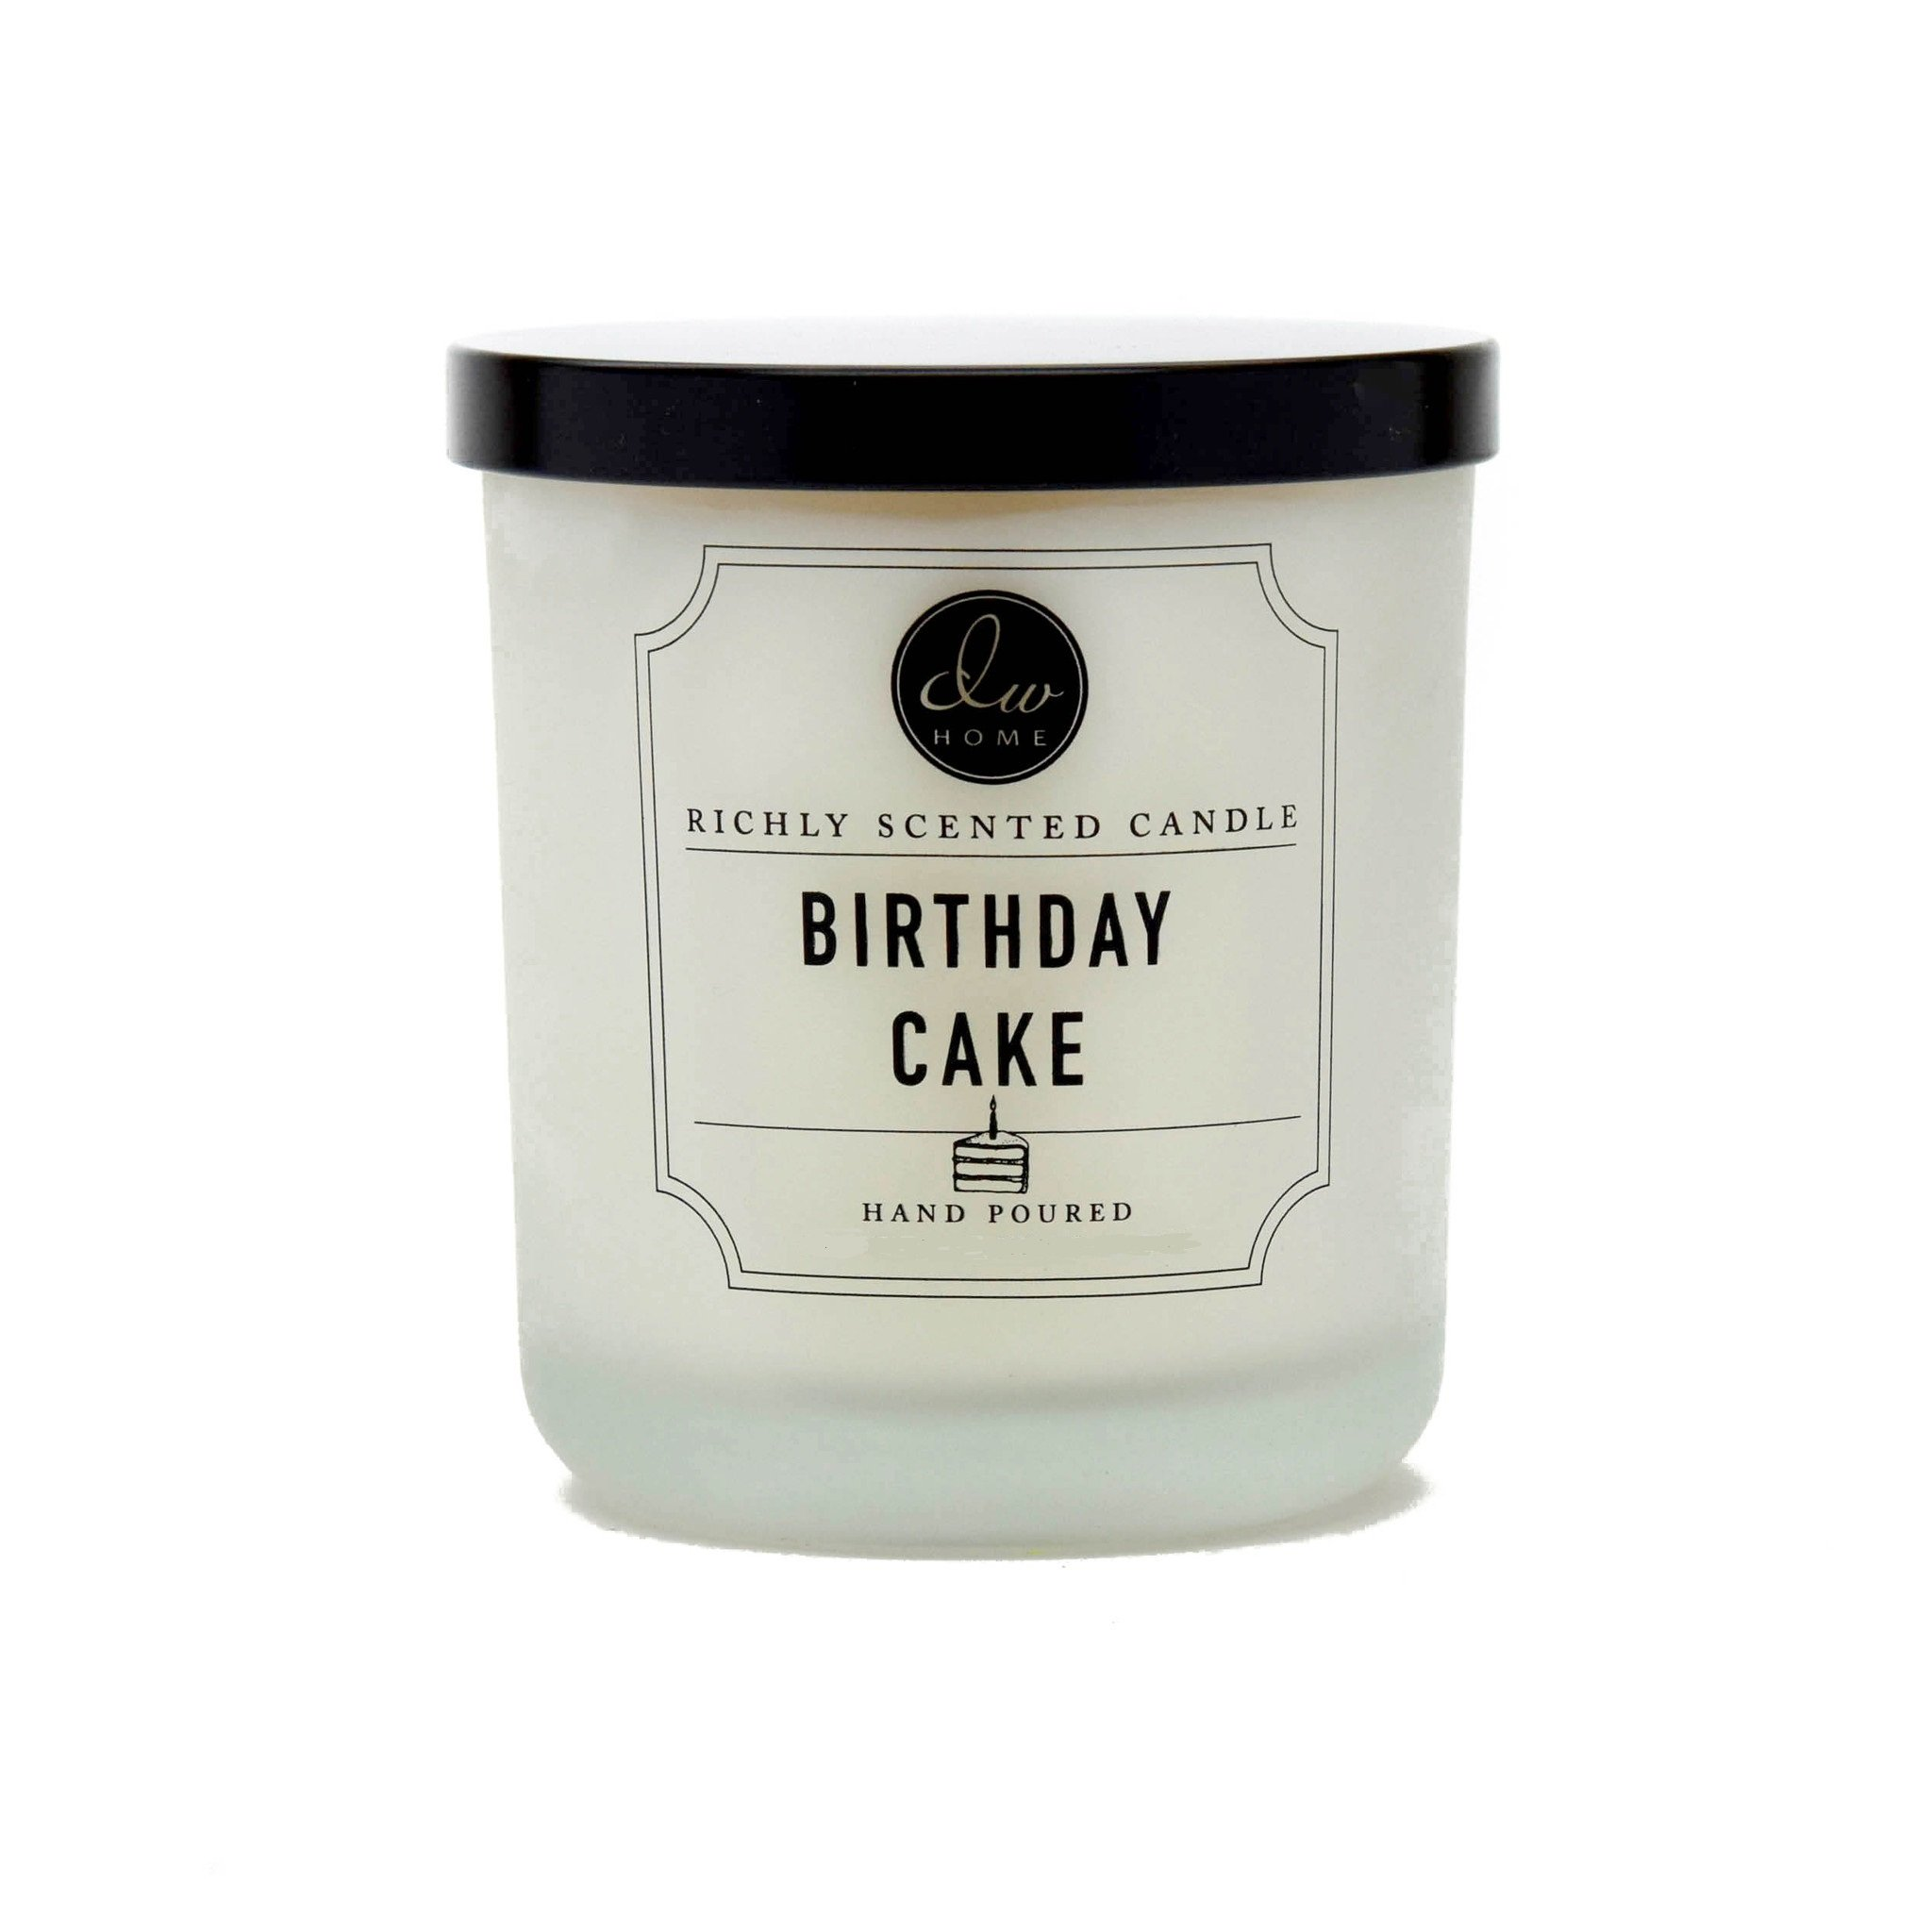 Amazon Dw Home Birthday Cake Richly Scented Candle Small Single Wick Hand Poured 4 Oz Kitchen